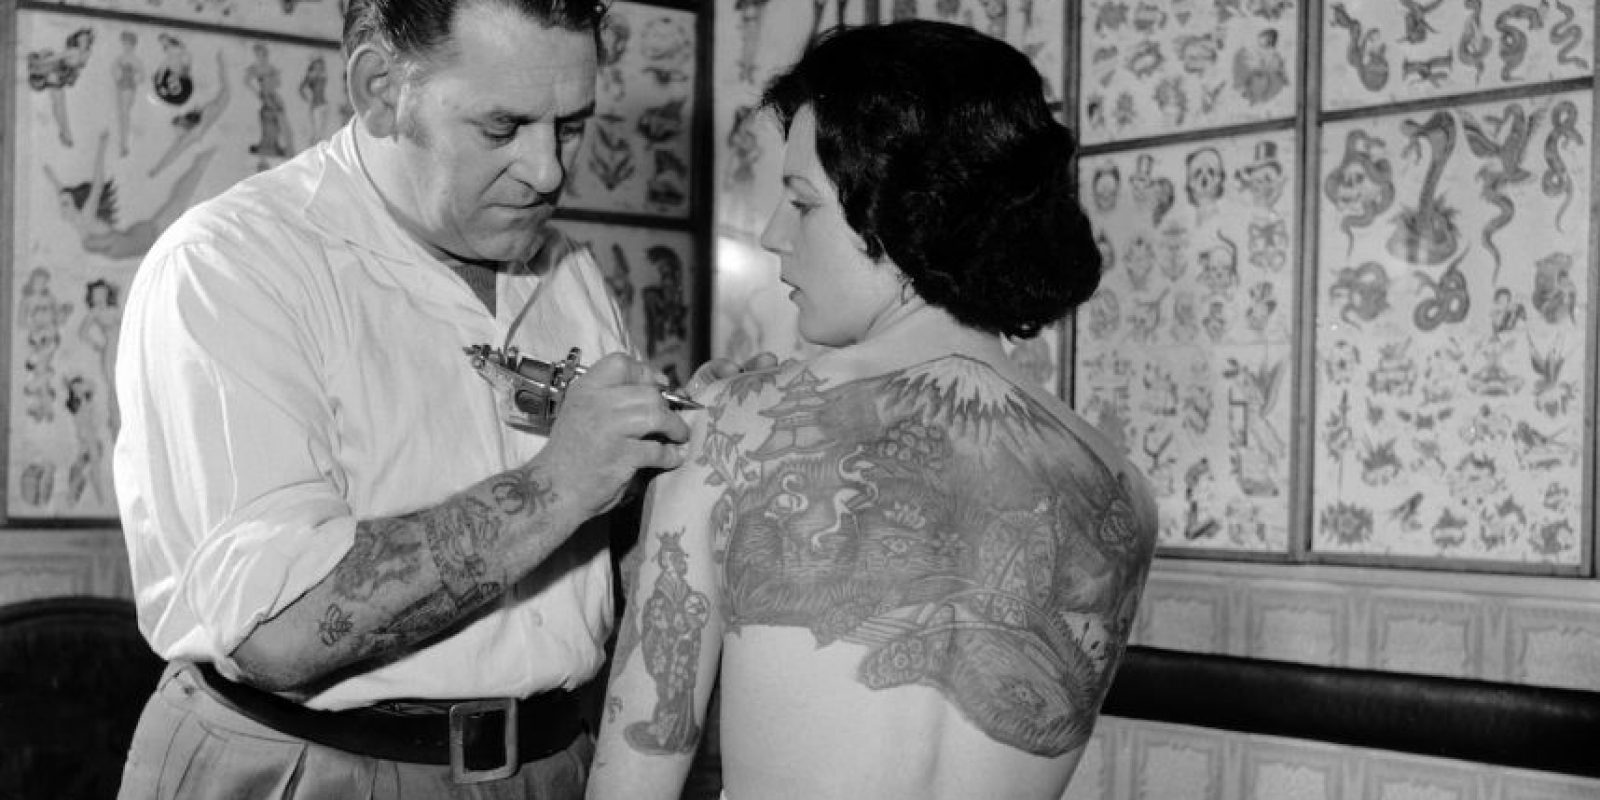 Un tatuaje es una modificación del color de la piel. Foto: Getty Images